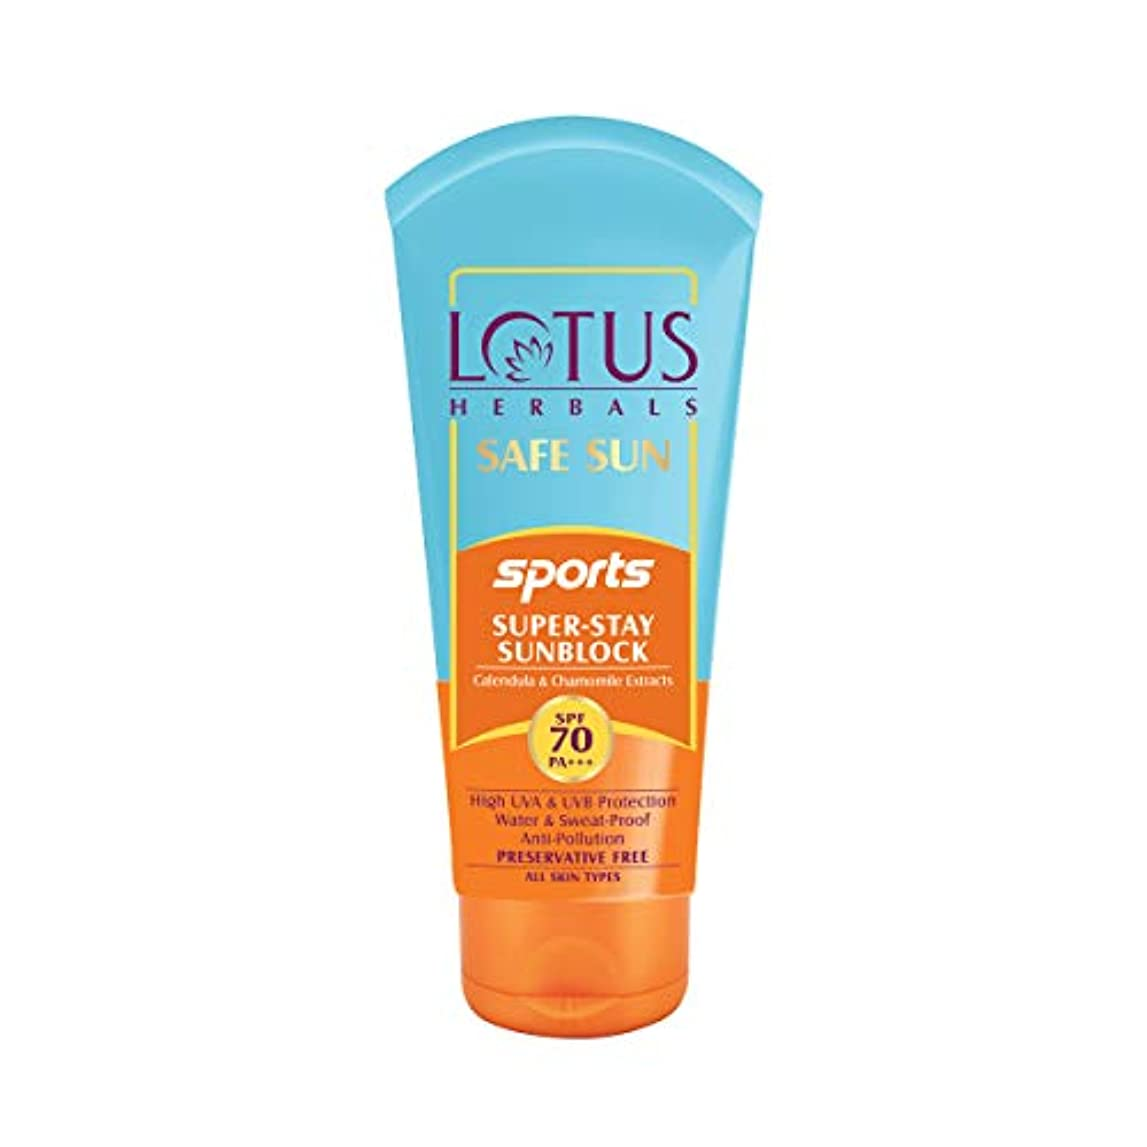 急襲説明する対話Lotus Herbals Safe Sun Sports Super-Stay Sunblock Spf 70 Pa+++, 80 g (Calendula and chamomile extracts)